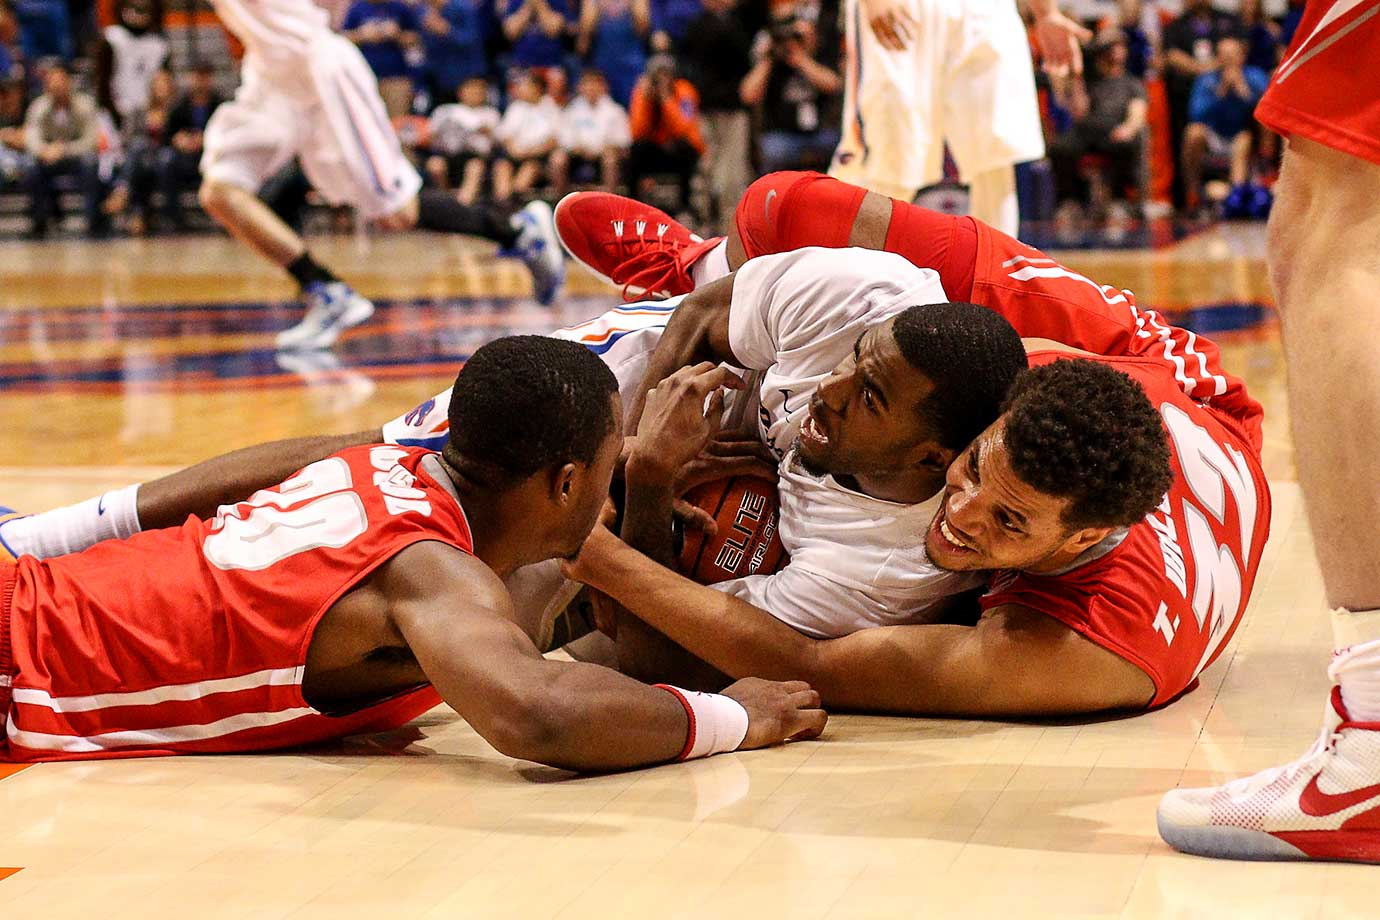 Mikey Thompson of the Boise State Broncos and Tim Williams of the New Mexico Lobos grapple for a loose ball at Taco Bell Arena in Boise, Idaho. New Mexico won 88-83.